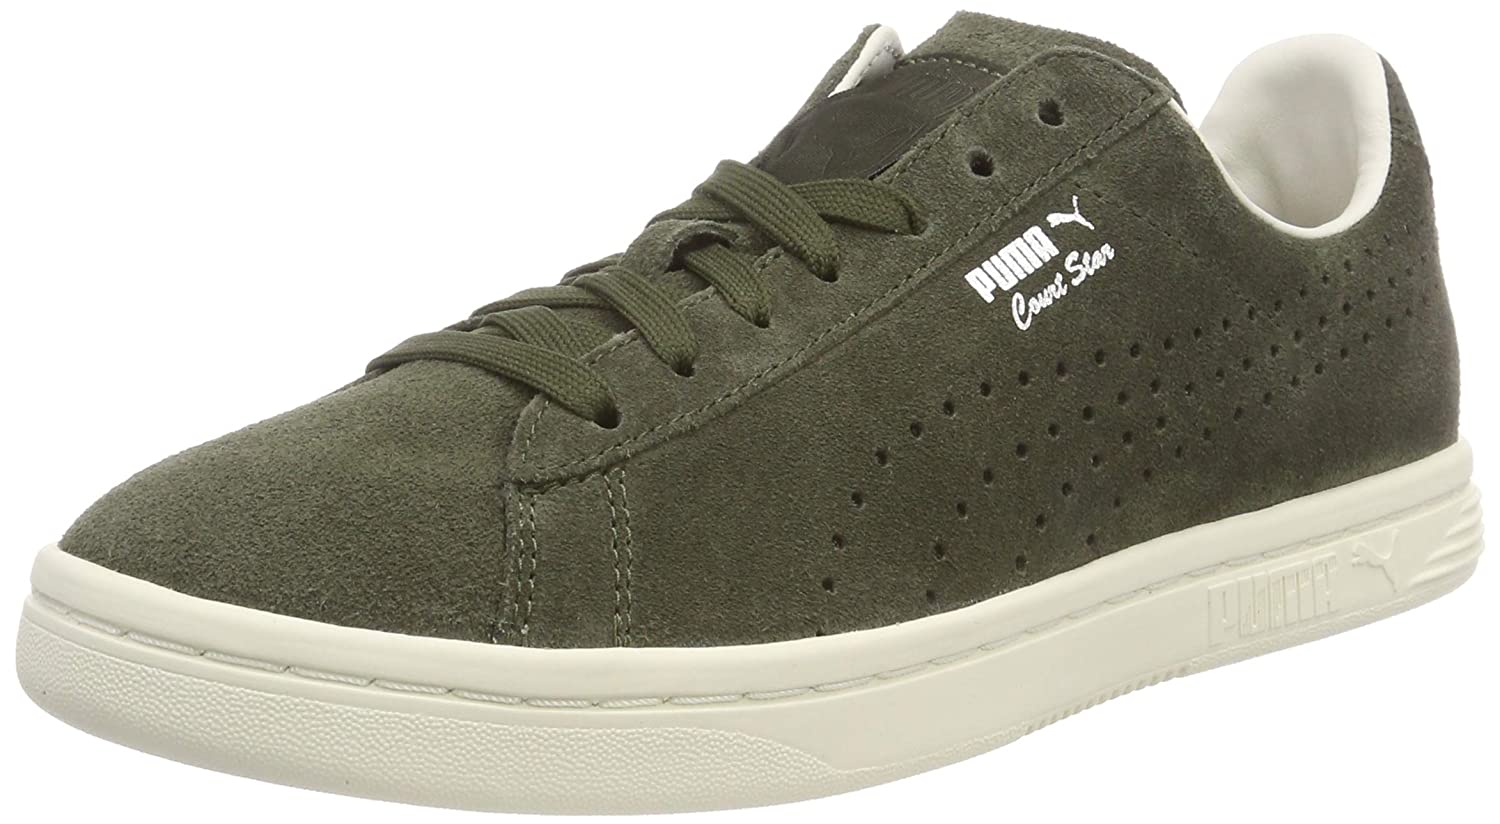 TALLA 41 EU. Puma Court Star Suede Interest, Zapatillas Unisex Adulto